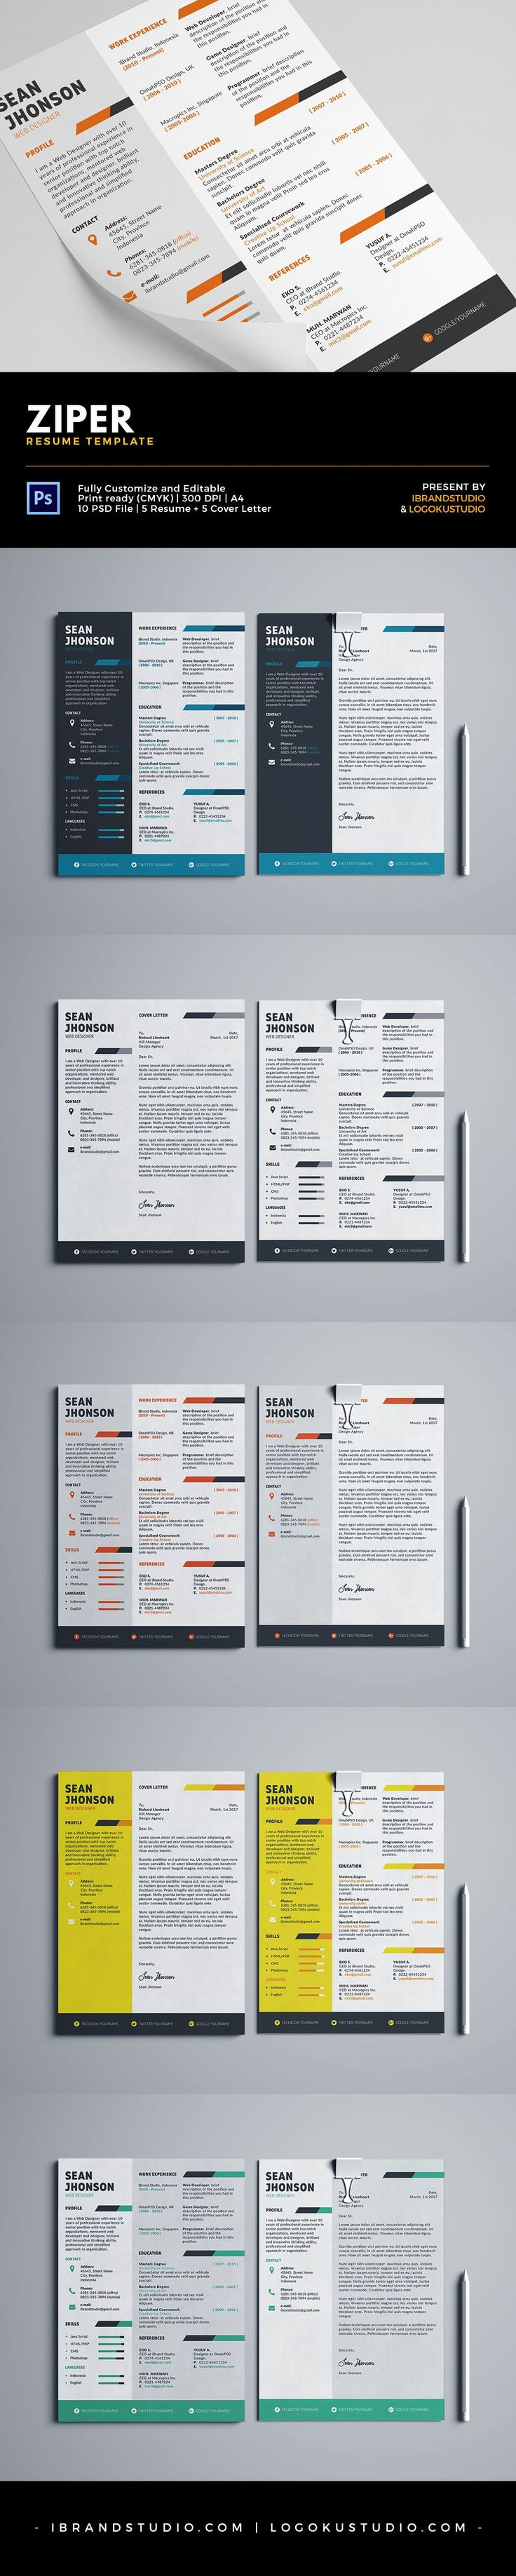 Free Ziper Resume Template and Cover Letter